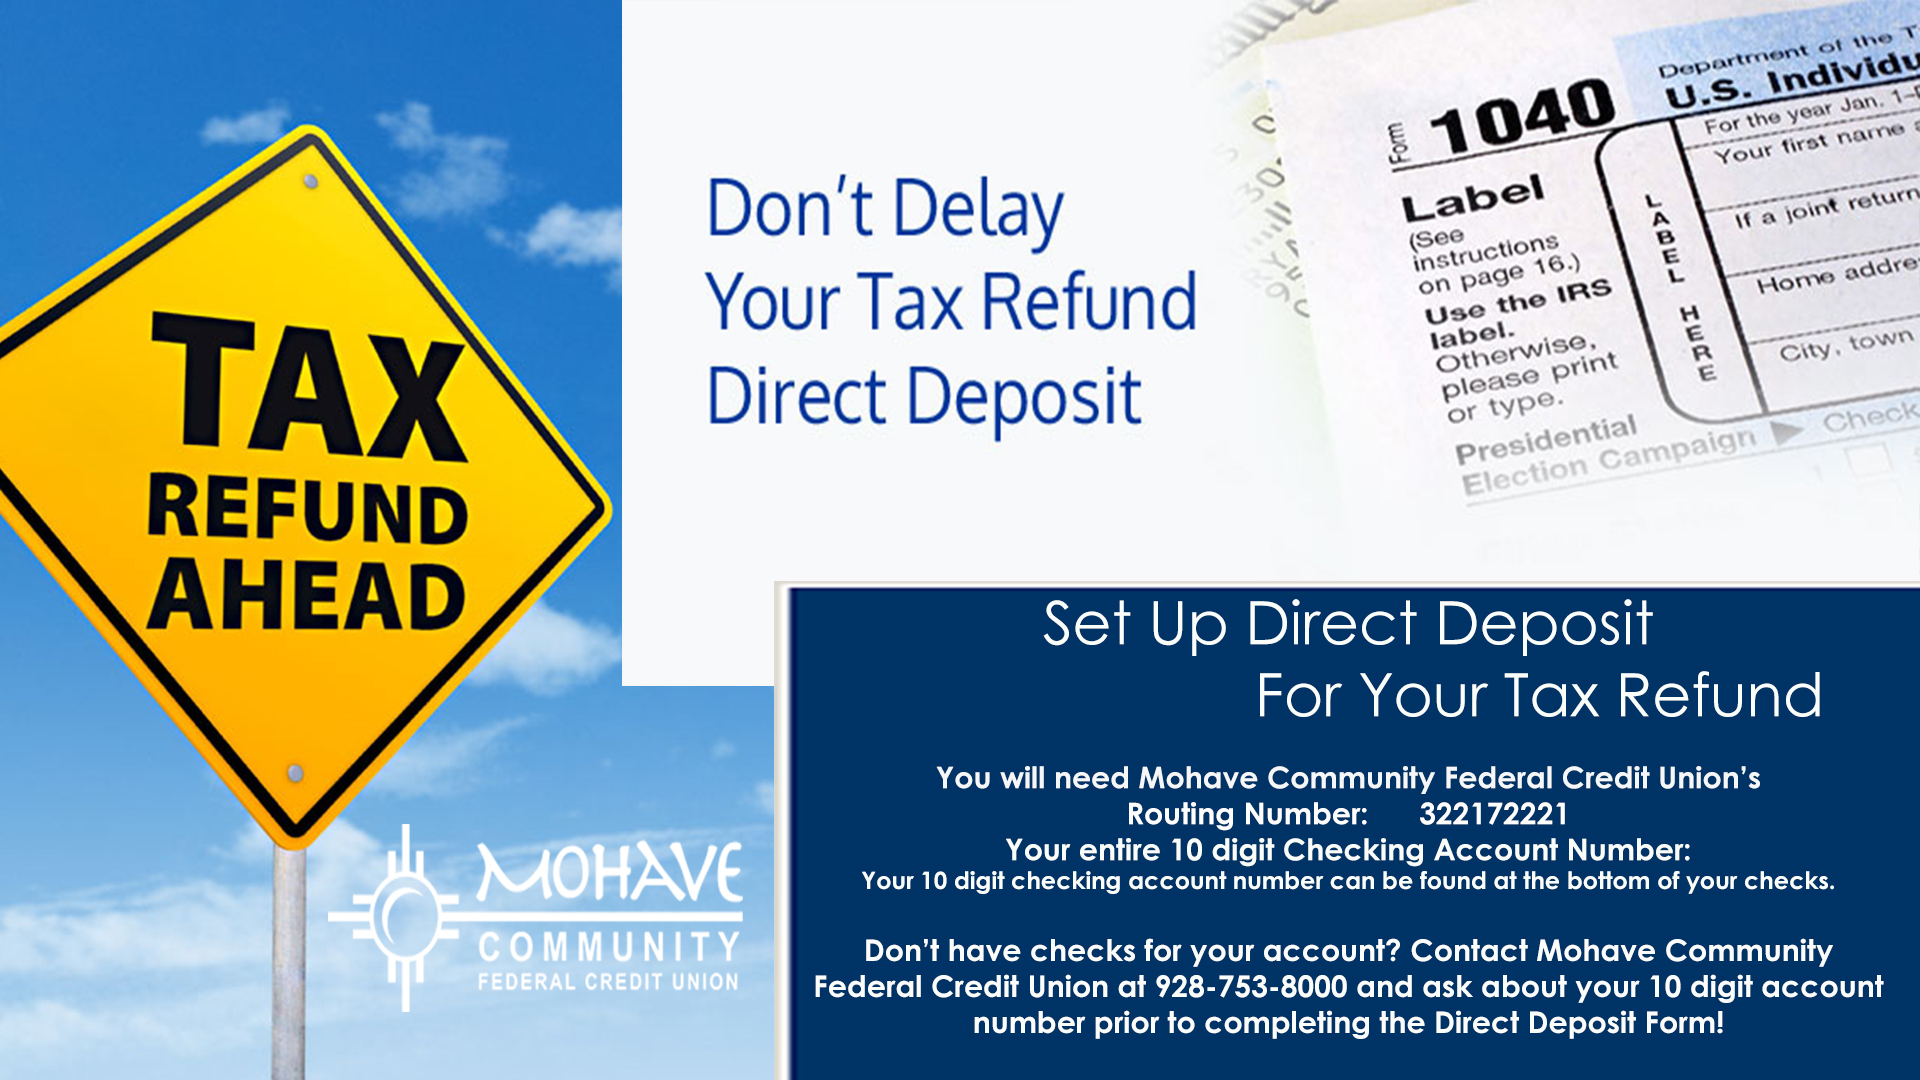 Don't delay your tax refund - set up direct deposit for your tax refund